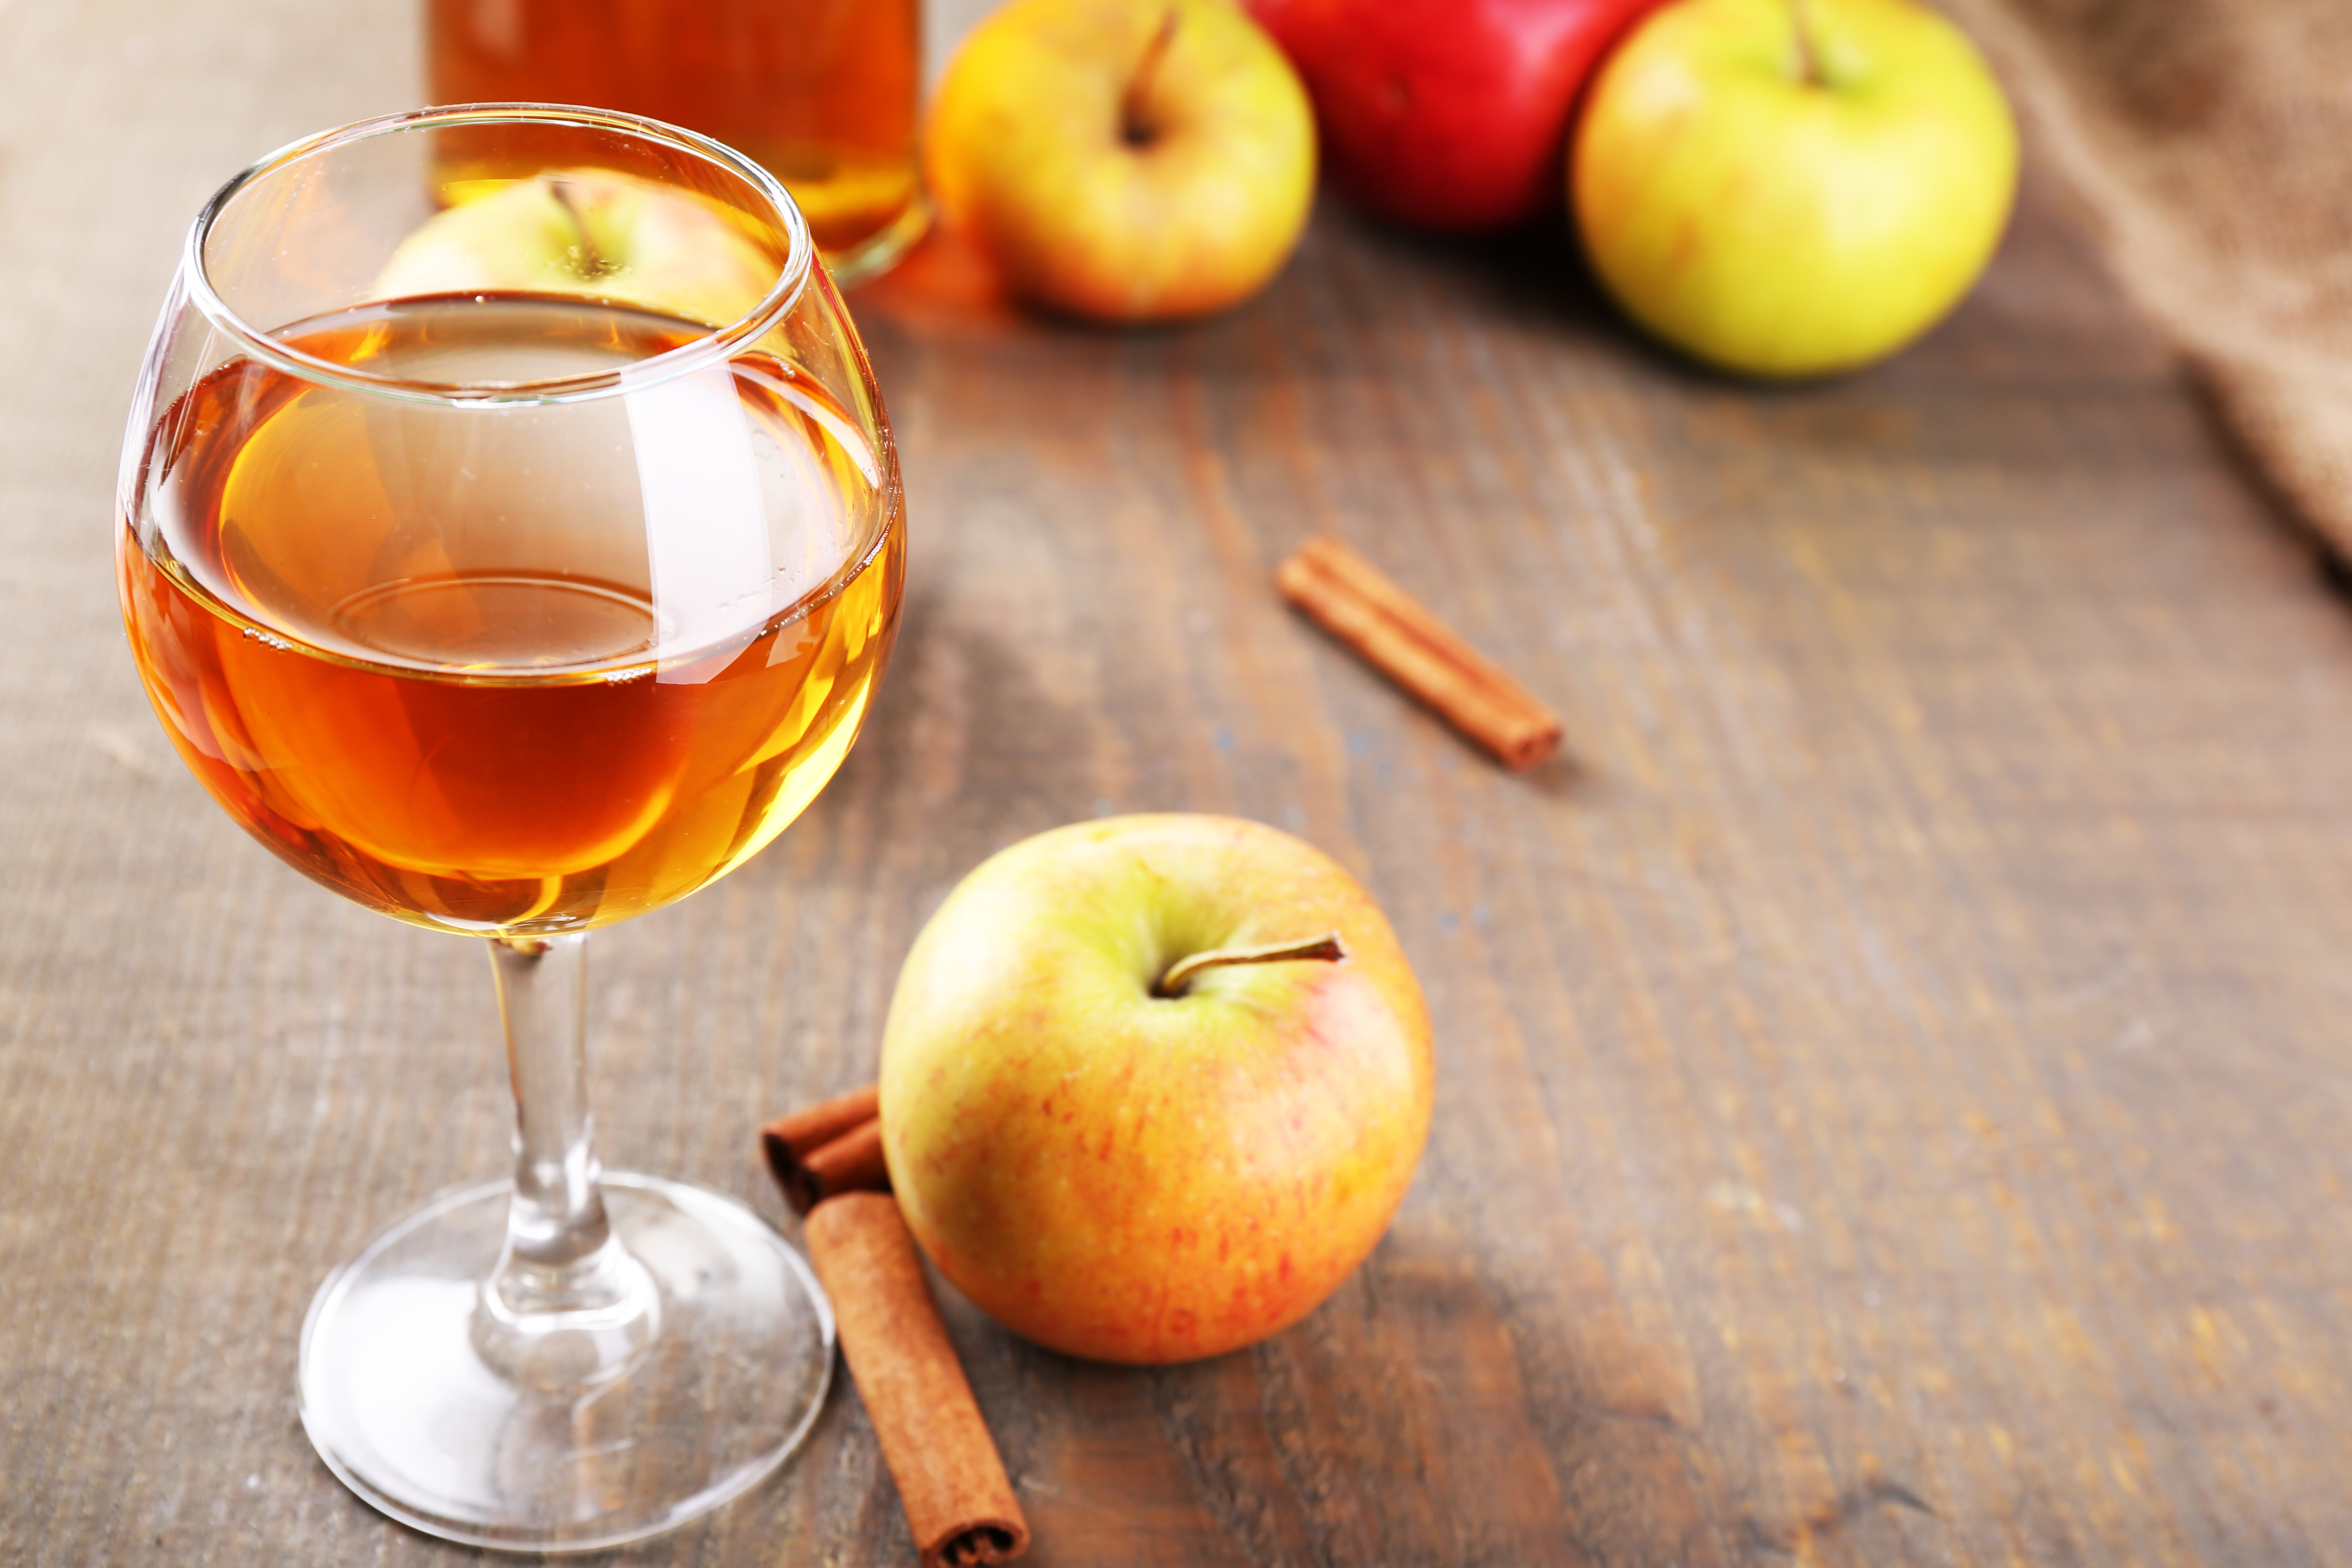 Chicago BJCP Cider Judging Exam February 13, 2021